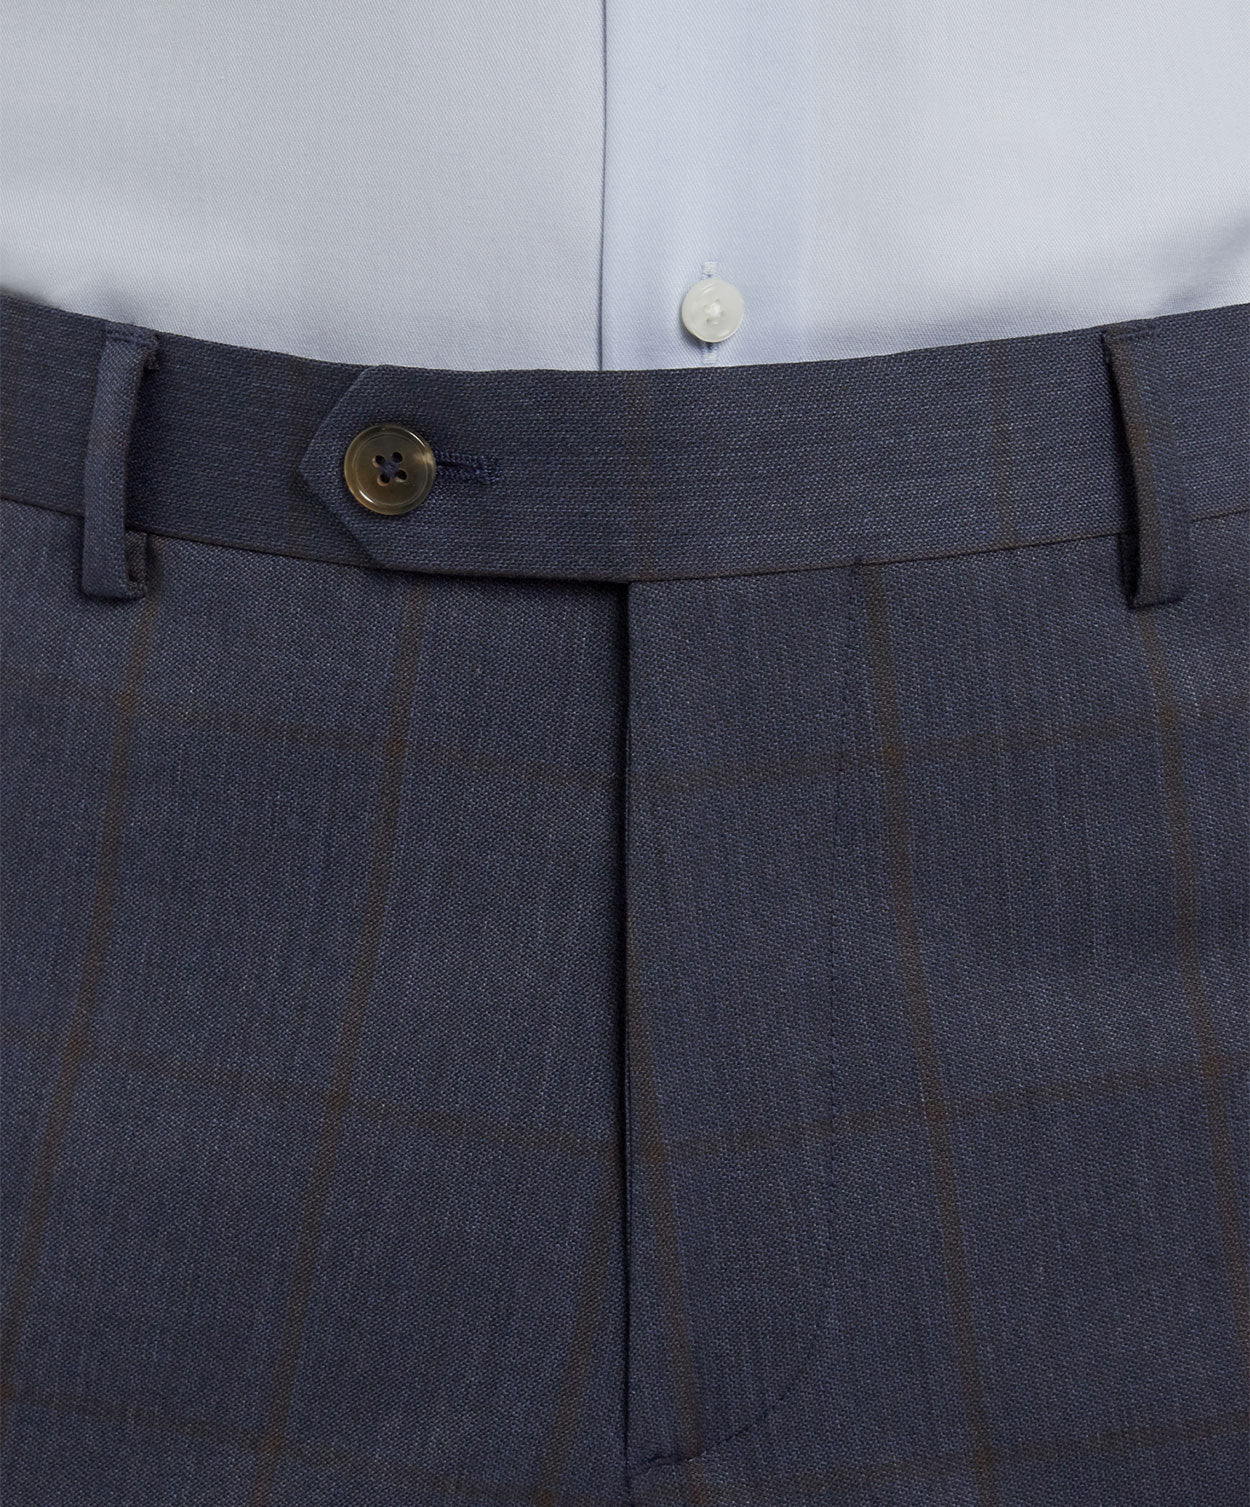 Buck Split Char Blue/Cognac Wide Faded Chalk Stripe Separates Pant